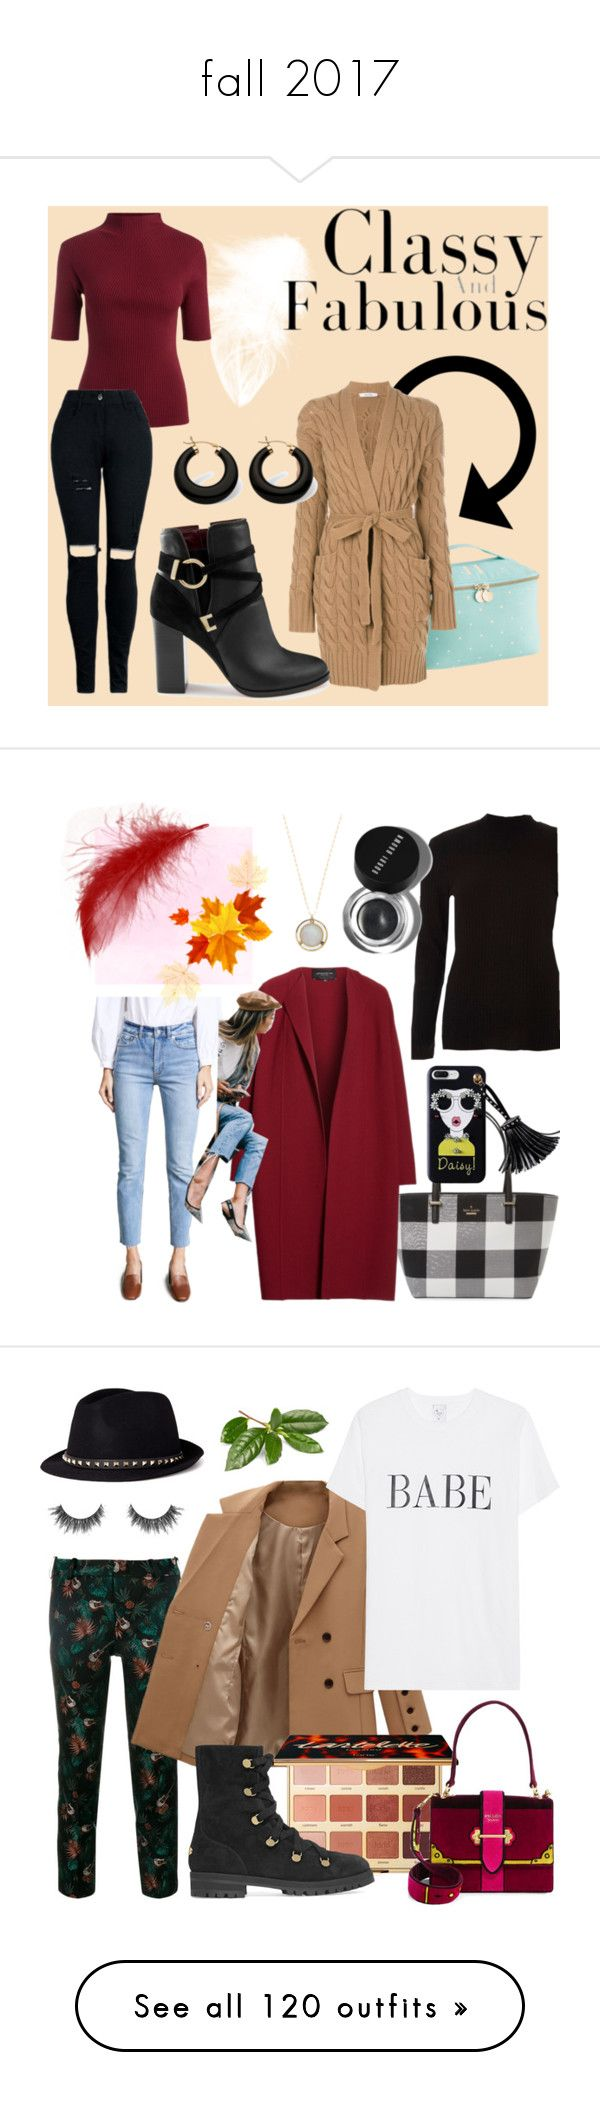 """""""fall 2017"""" by chooseonecool ❤ liked on Polyvore featuring PBteen, MaxMara, Miss Selfridge, Palm Beach Jewelry, Kate Spade, Lafayette 148 New York, River Island, Jacqueline Rose, Rebecca Taylor and Bobbi Brown Cosmetics"""